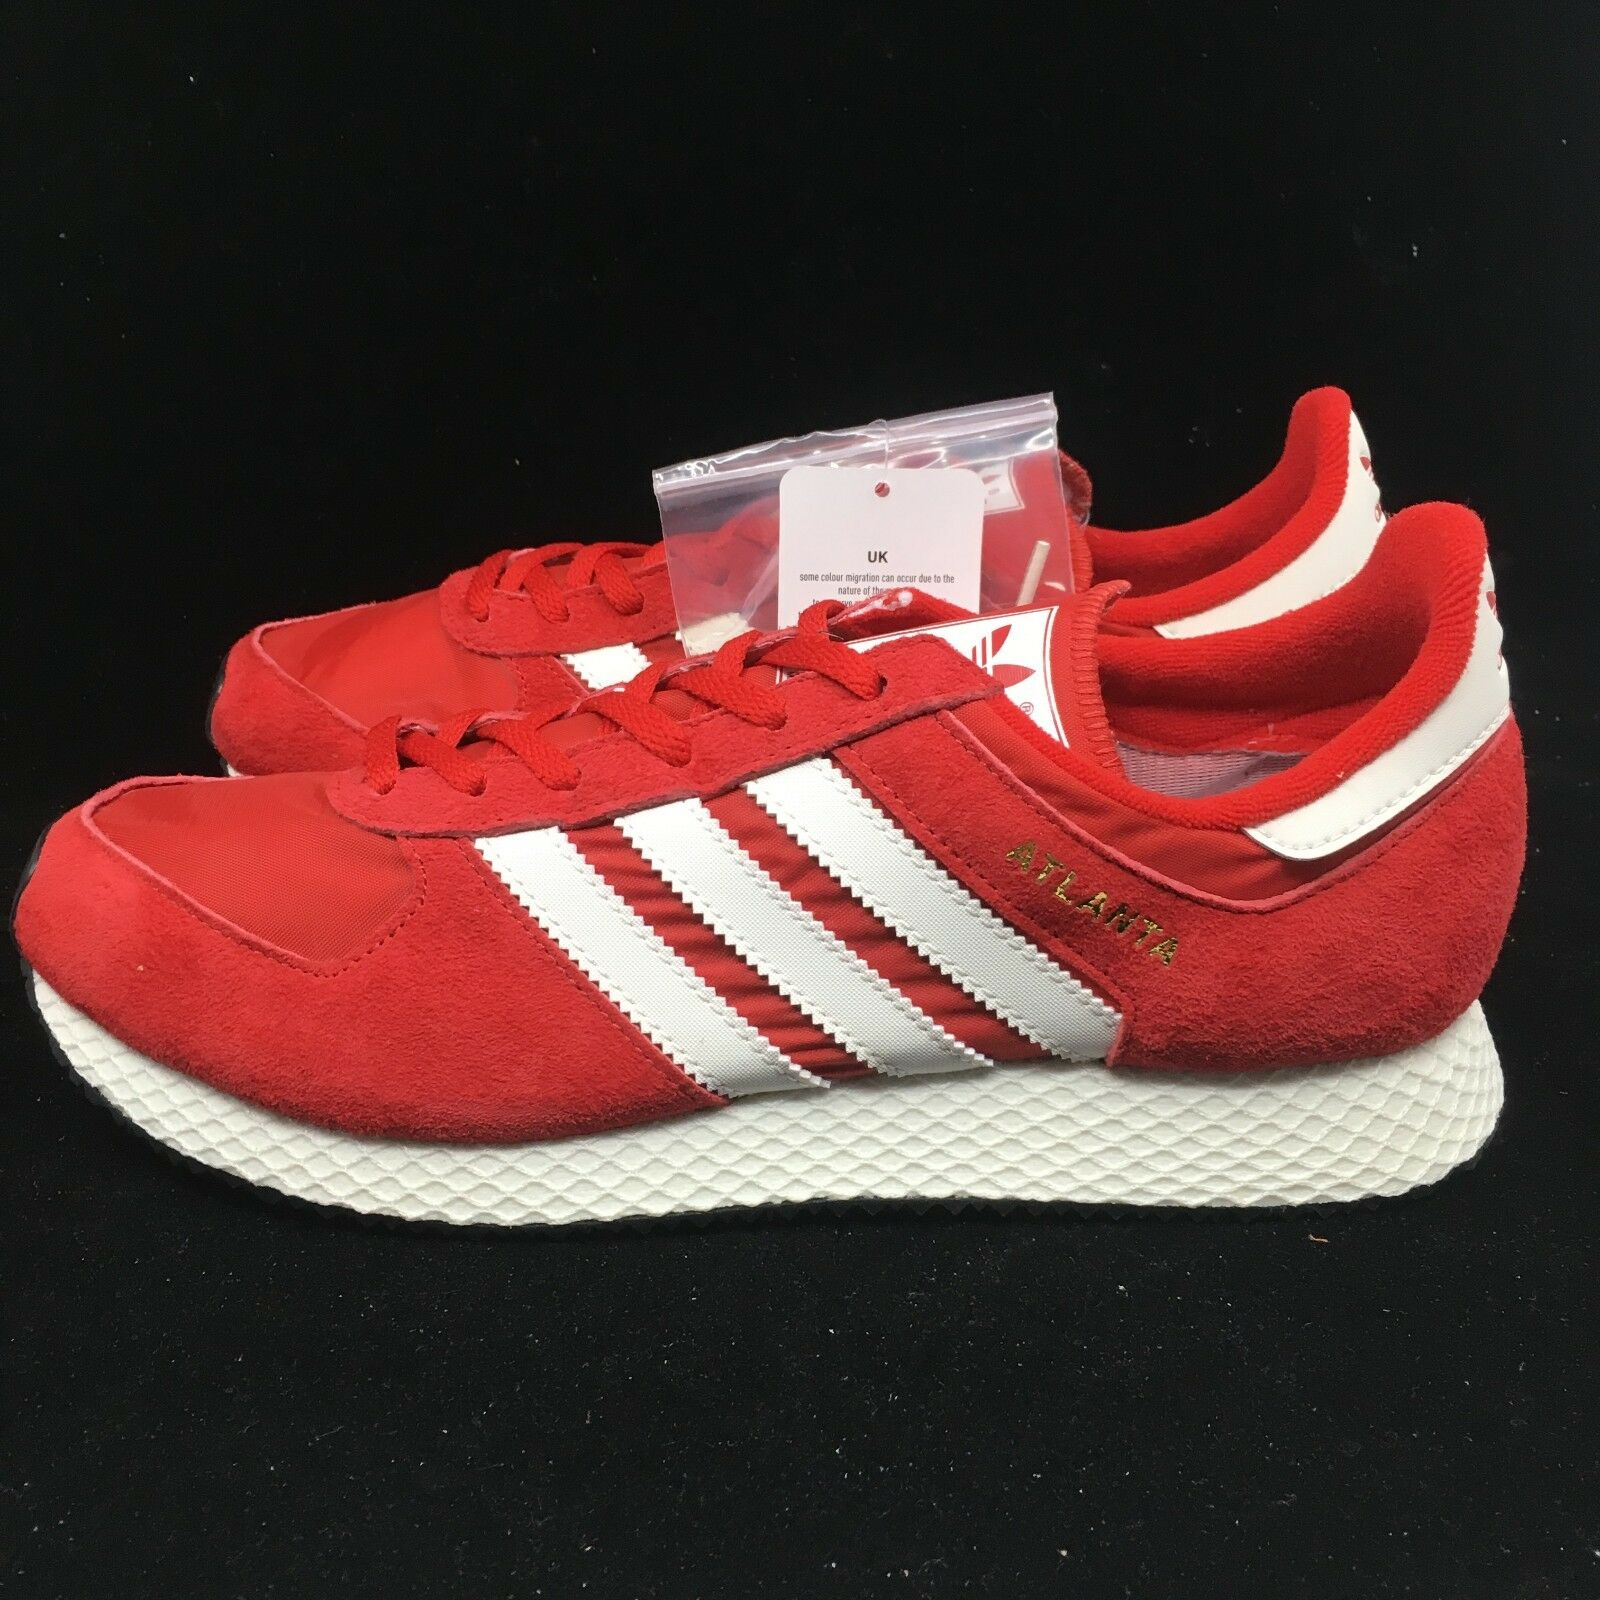 Adidas Atlanta SPZL Scarlet Chalk White gold Metallic Red Black BY1880 Spezial